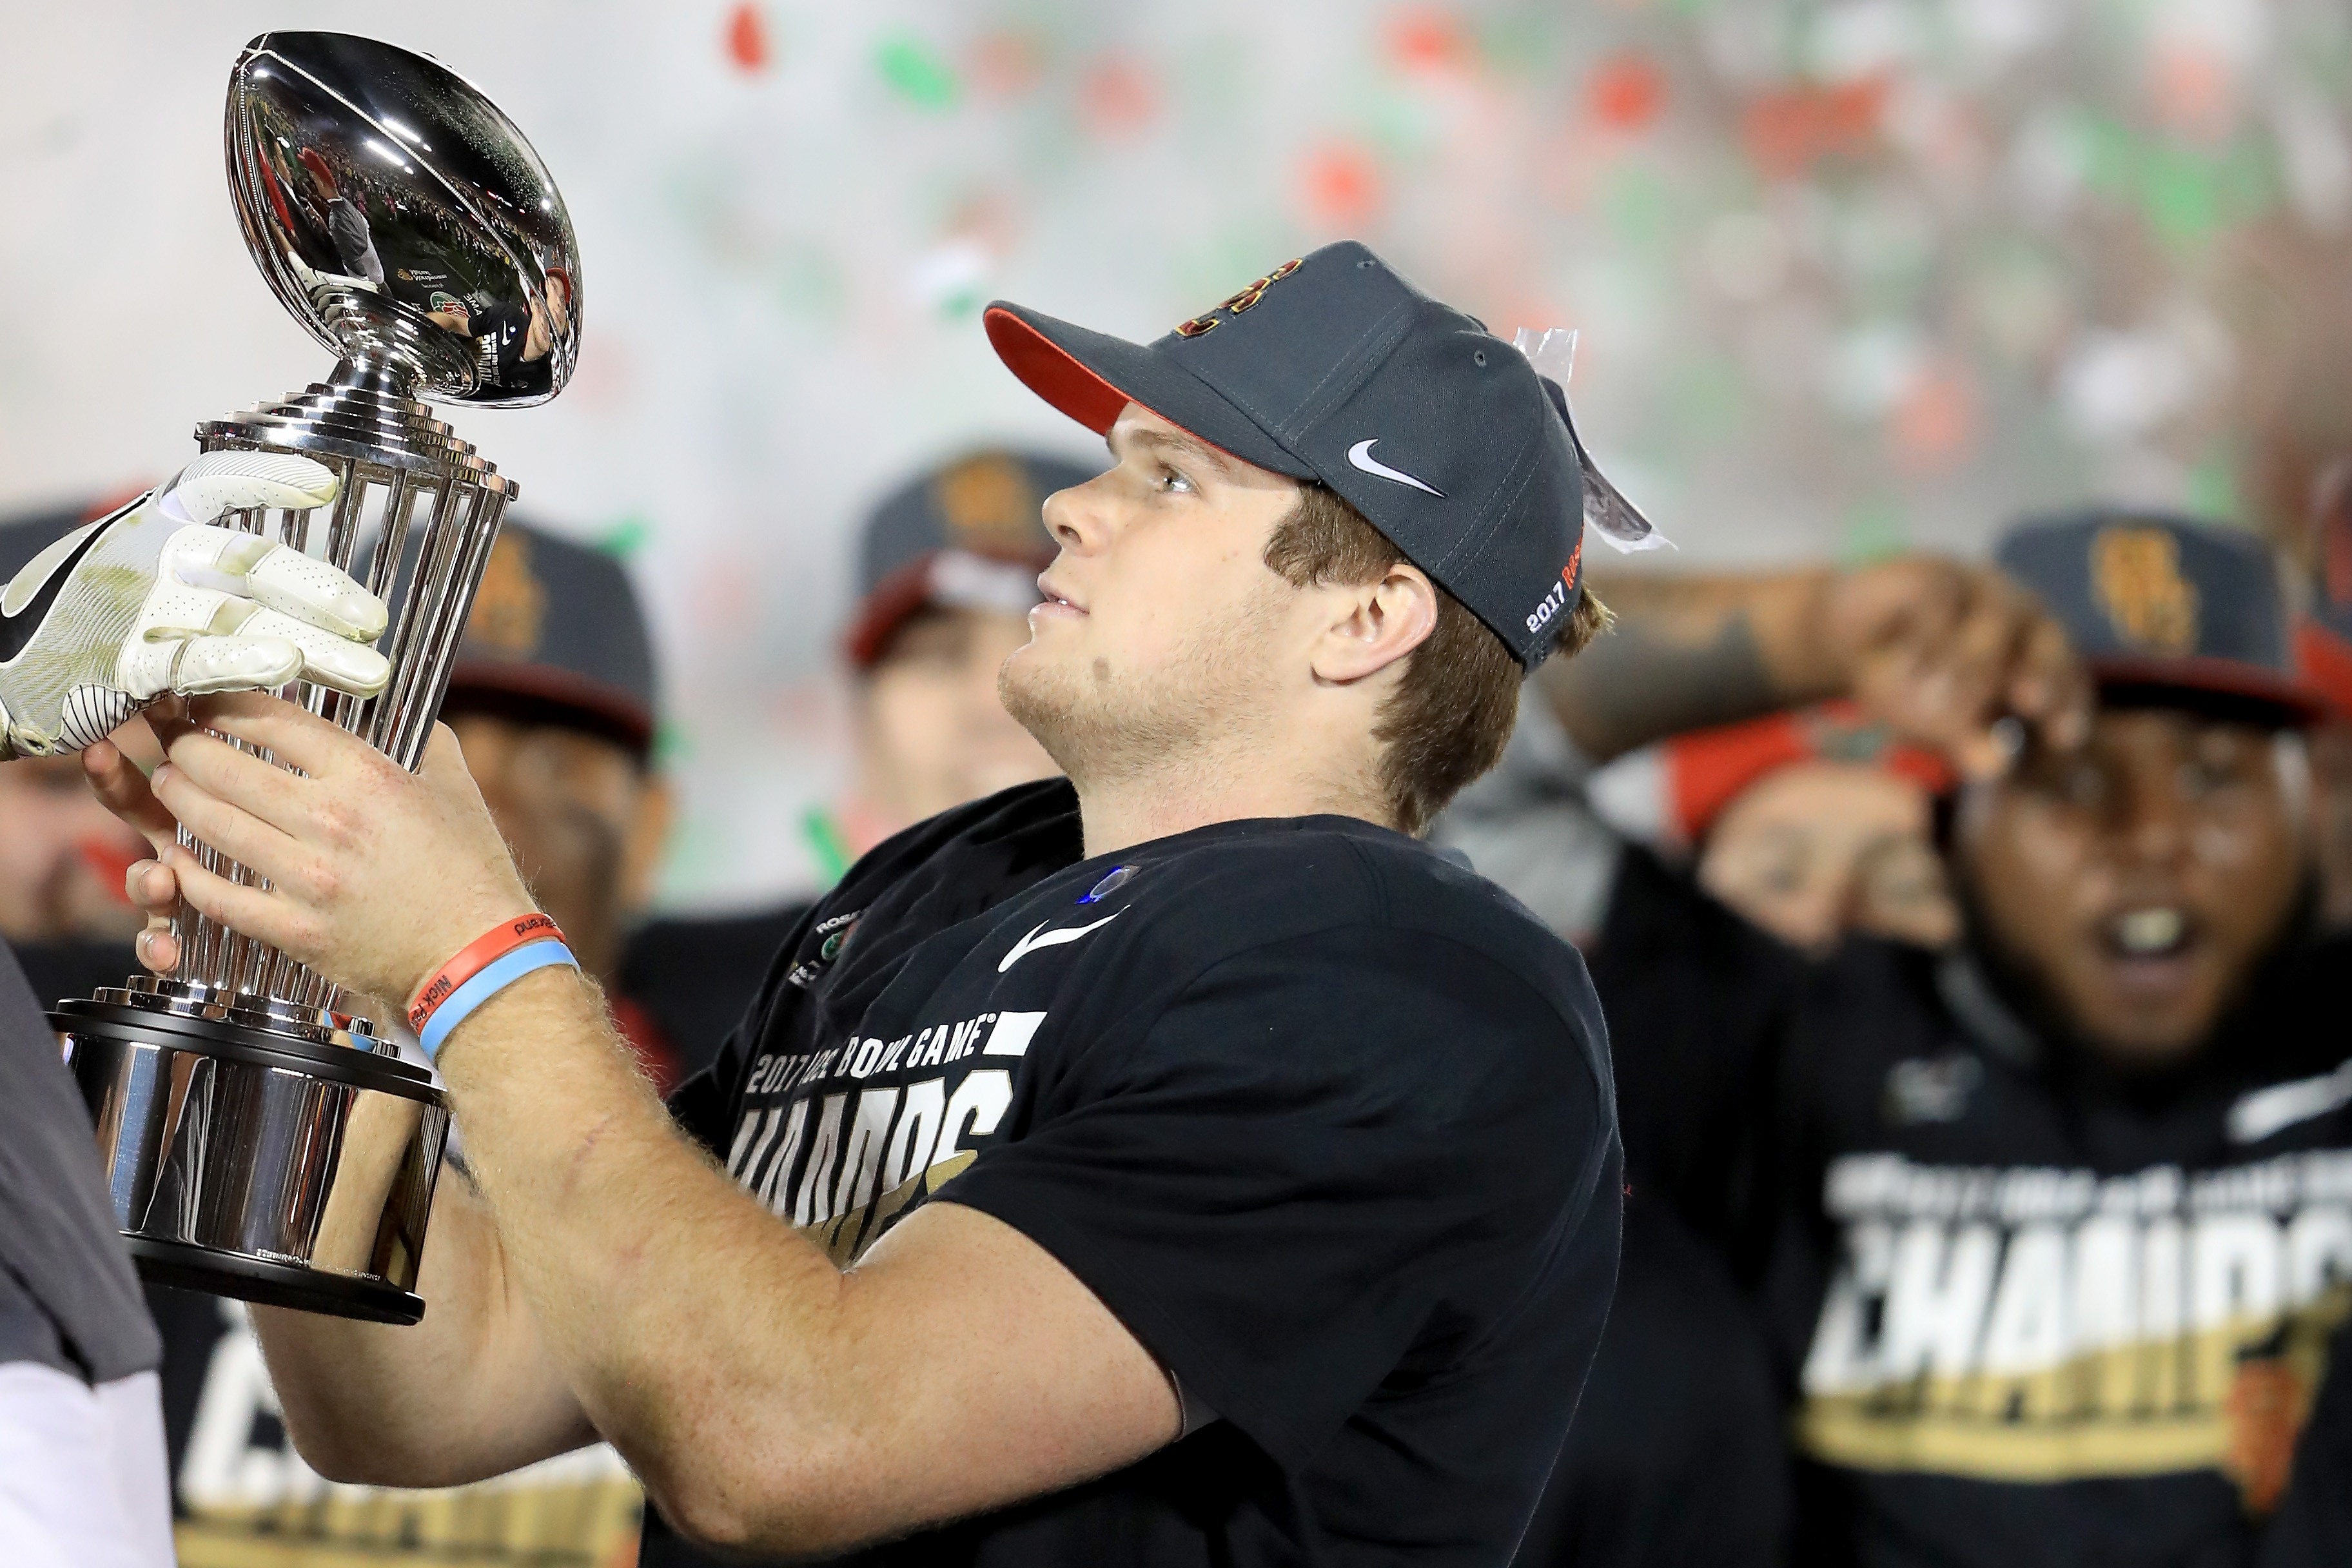 PASADENA, CA - JANUARY 02:  Quarterback Sam Darnold #14 of the USC Trojans celebrates with the 2017 Rose Bowl trophy after defeating the Penn State Nittany Lions 52-49 to win the 2017 Rose Bowl Game presented by Northwestern Mutual at the Rose Bowl on January 2, 2017 in Pasadena, California.  (Photo by Sean M. Haffey/Getty Images)